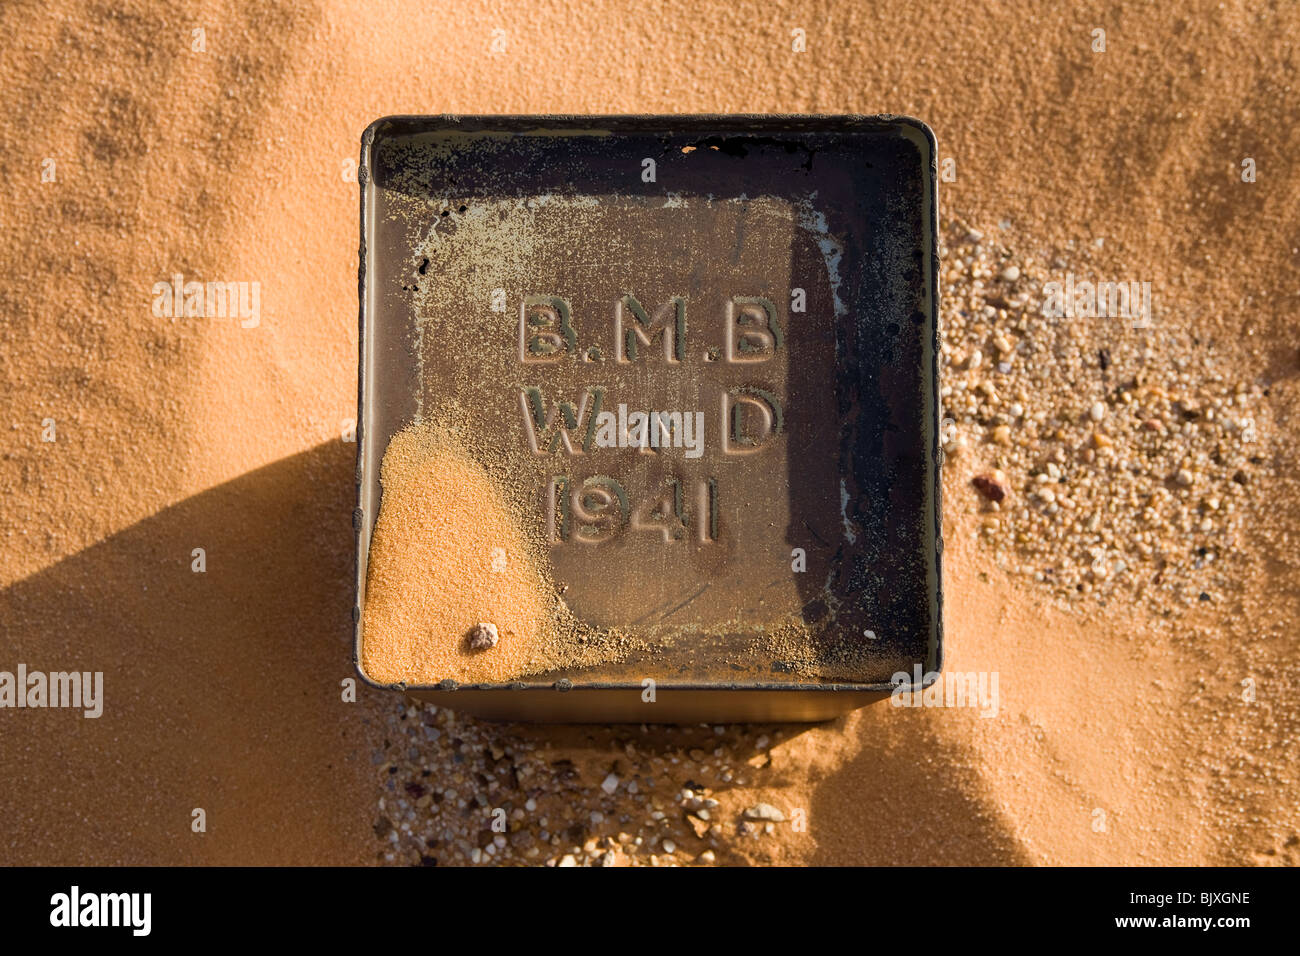 Fuel tin close to abandoned Ford 30 CWT CMP truck from 1941/42 era sinking in the sand of the Western Desert, Egypt - Stock Image